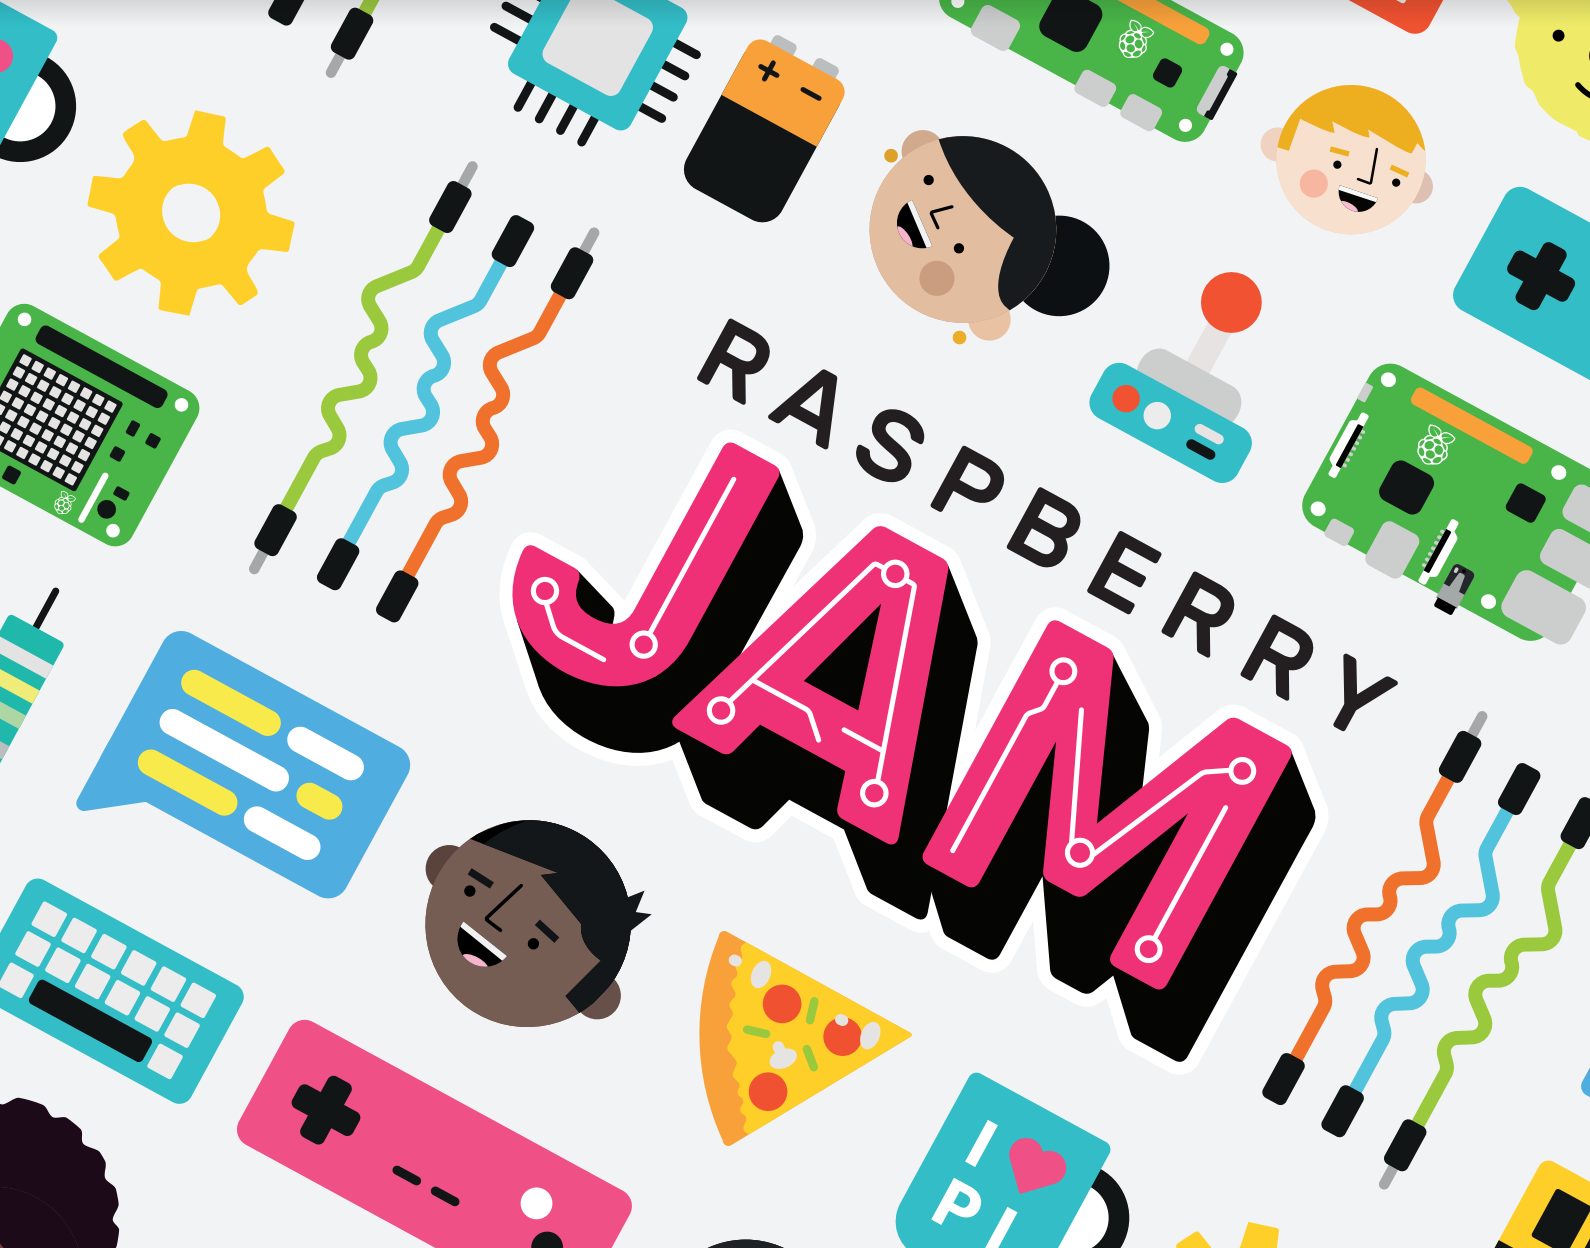 Raspberry Jam logo and illustrations